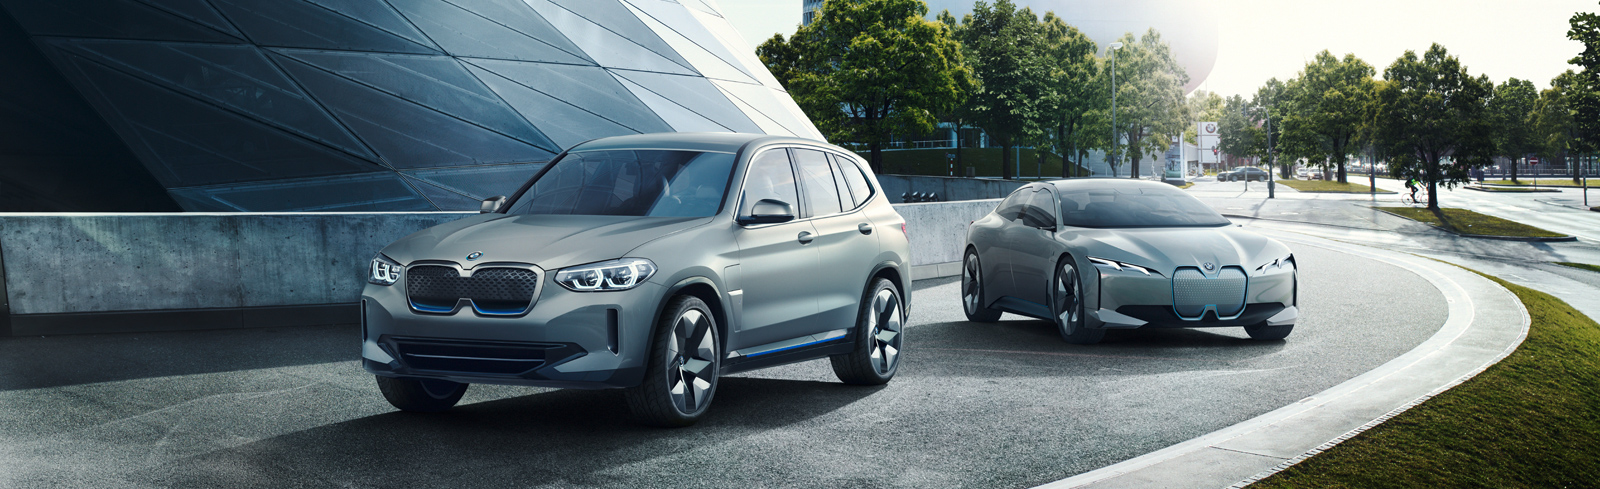 The purely electric BMW iX3 goes official with a WLTP range of 440 km